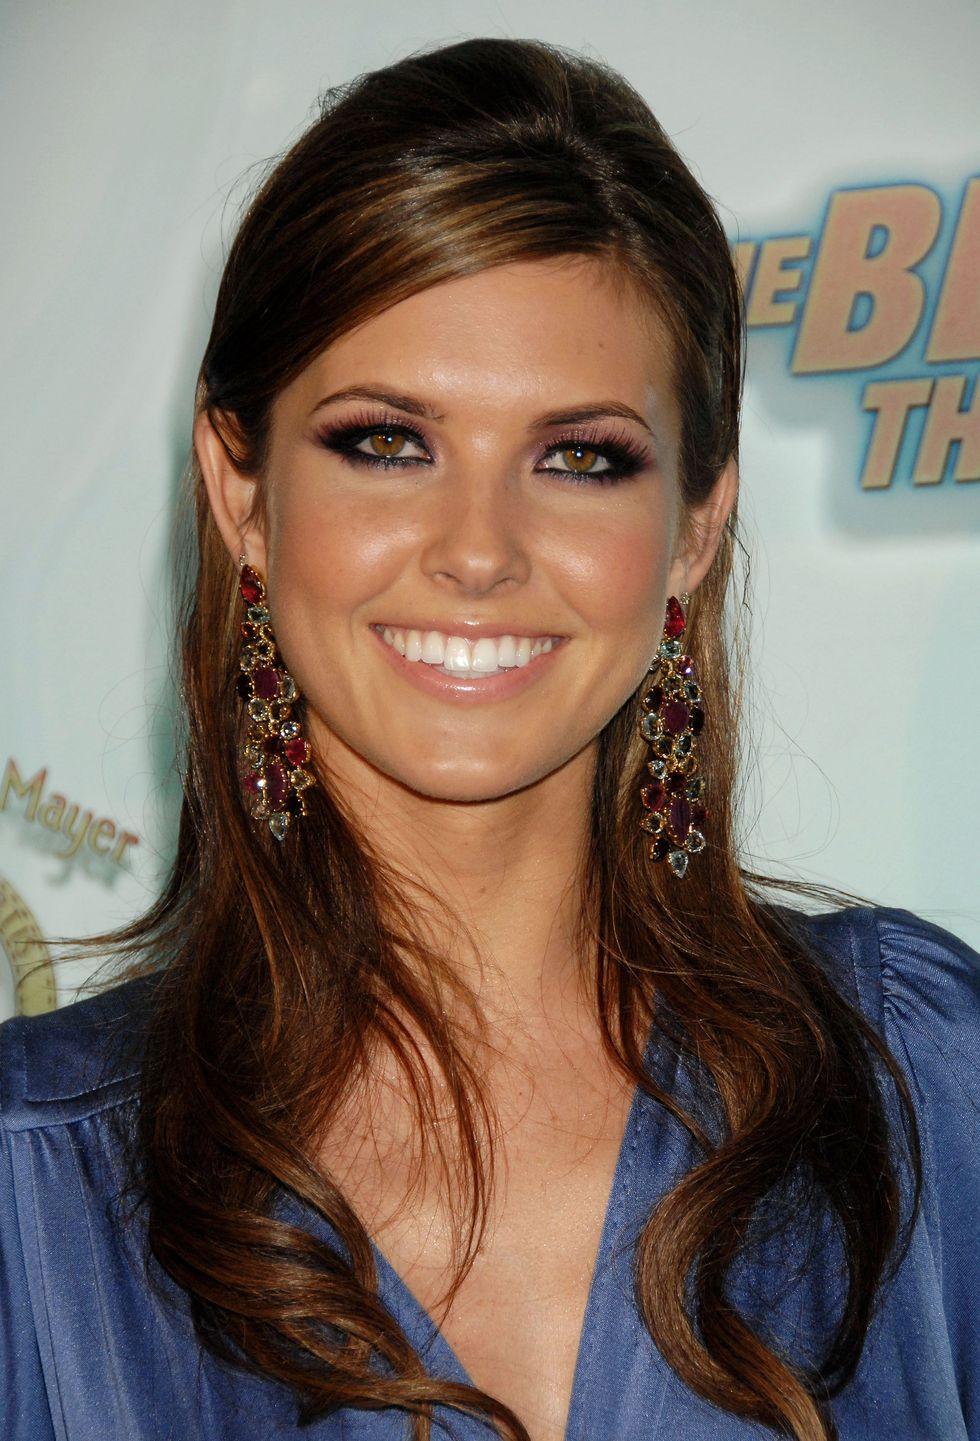 audrina-patridge-into-the-blue-2-the-reef-premiere-in-beverly-hills-12